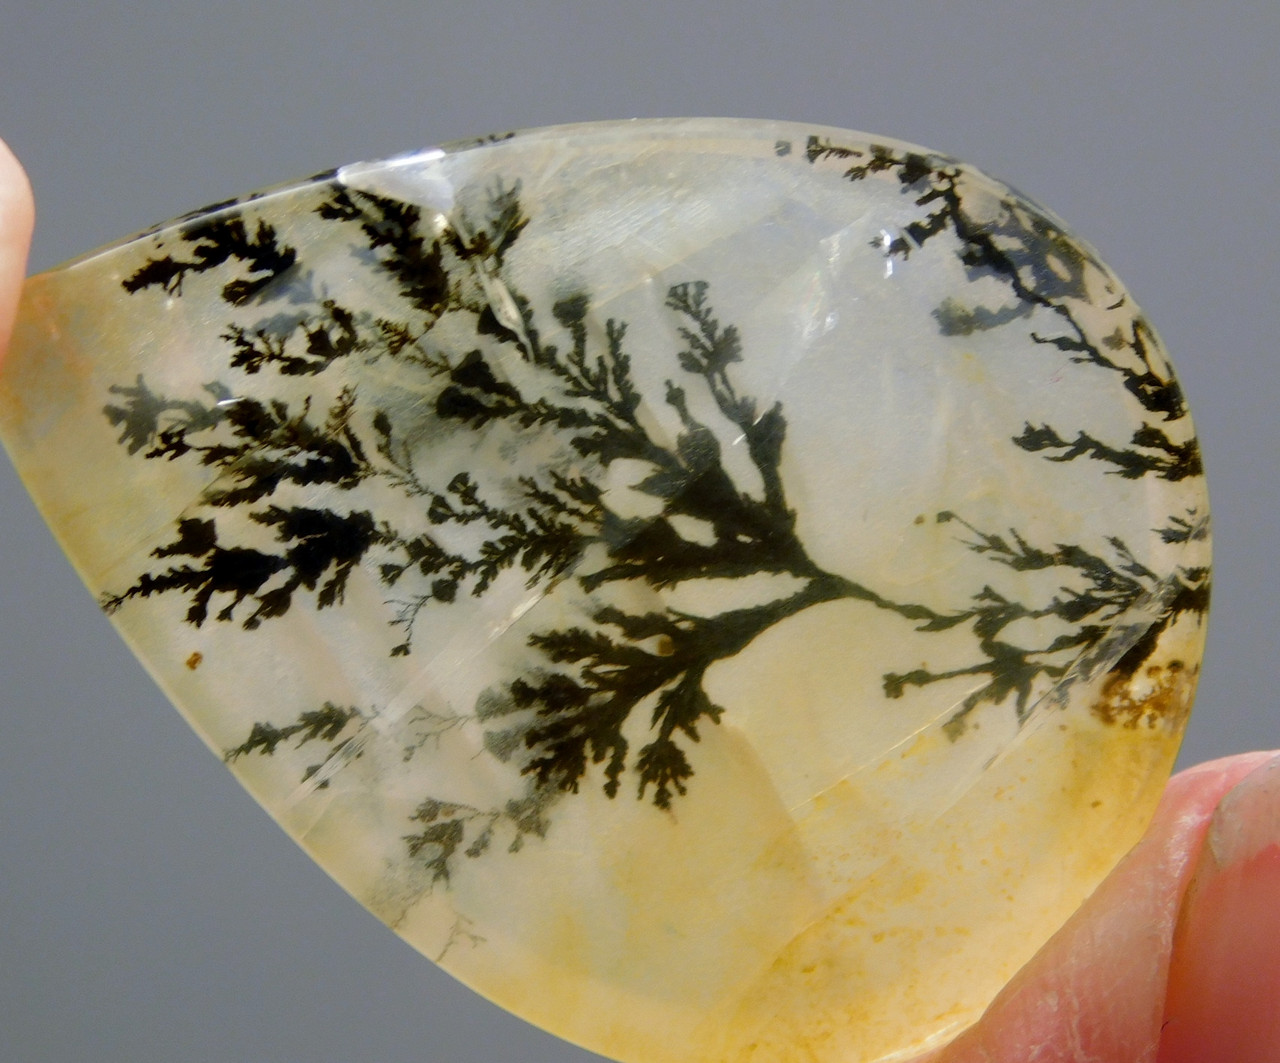 Cabochon Stone Dendritic Quartz Dendrite Pear Shaped #3